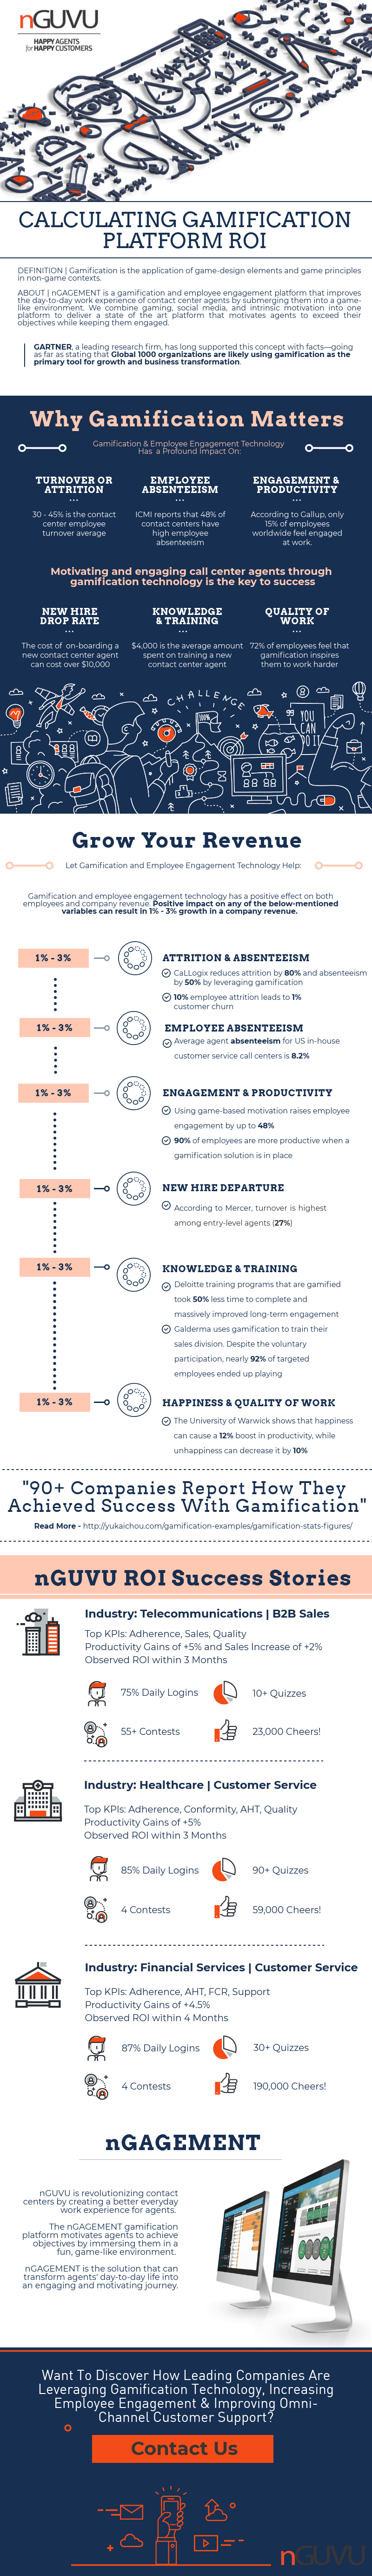 gamification roi calculate